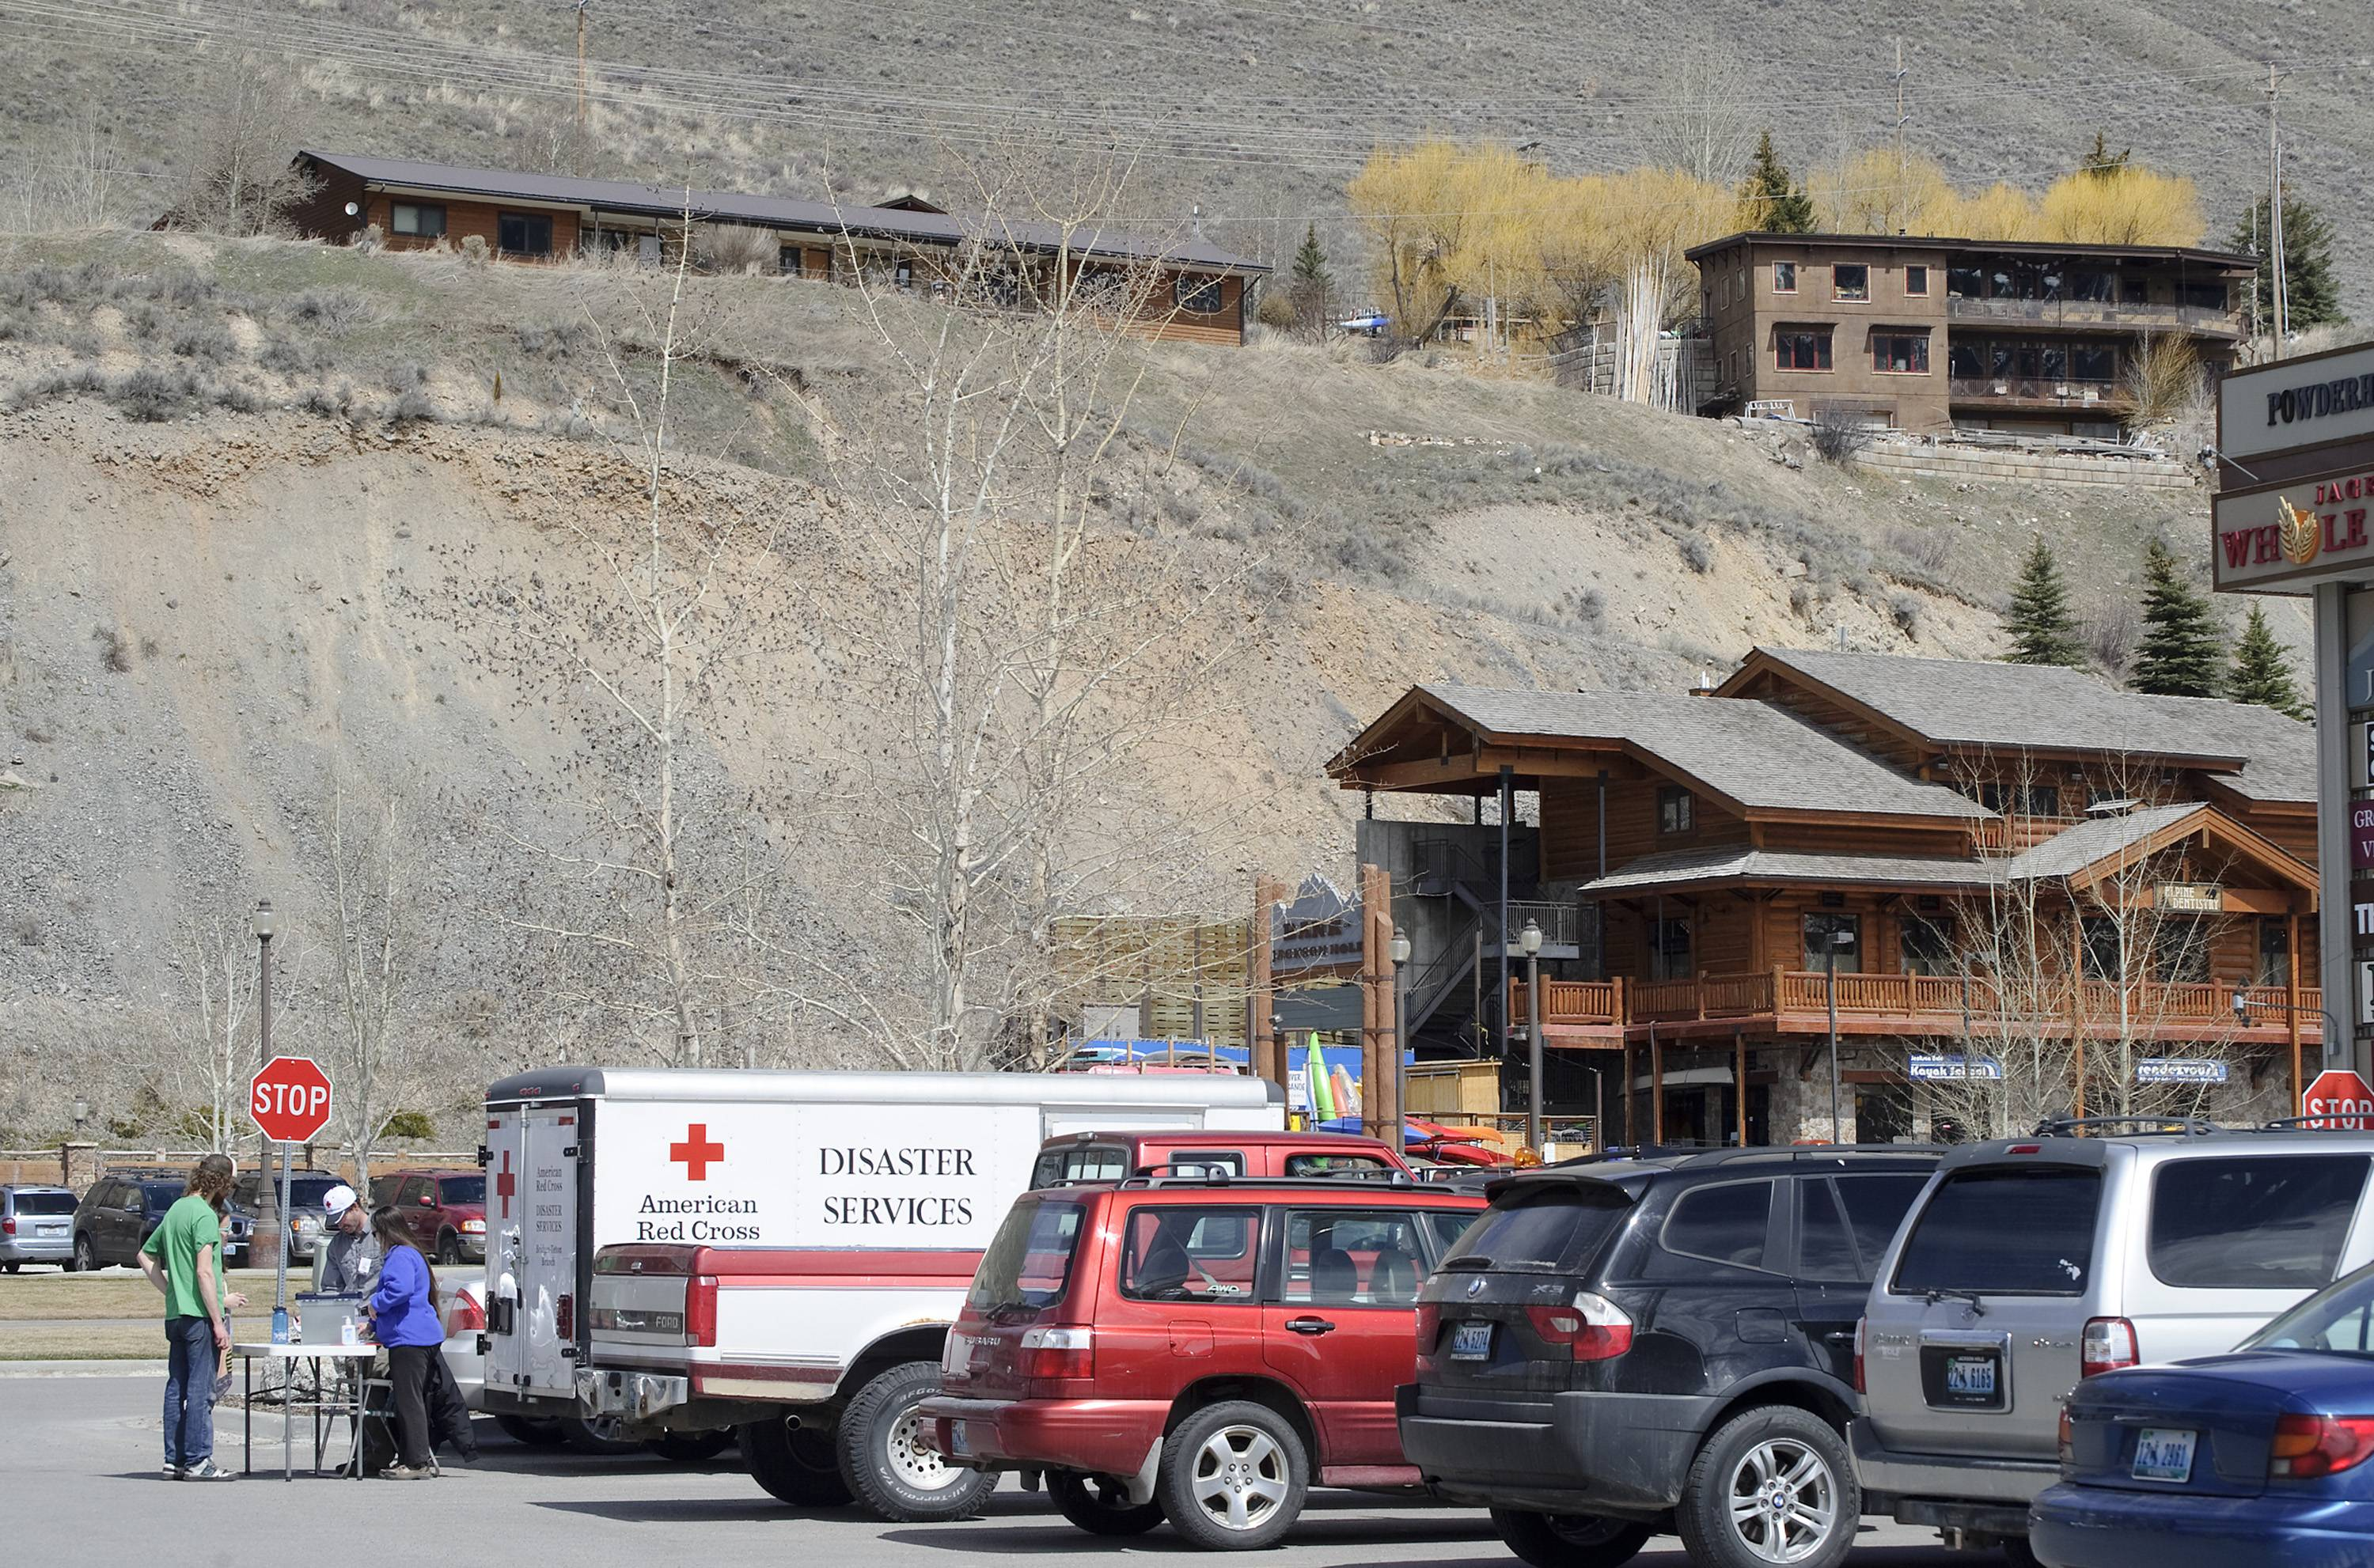 Displaced residents of Budge Drive in Jackson, Wyo., register with the American Red Cross on Thursday, as geologists study a hillside where the potential for a landslide called for an evacuation.